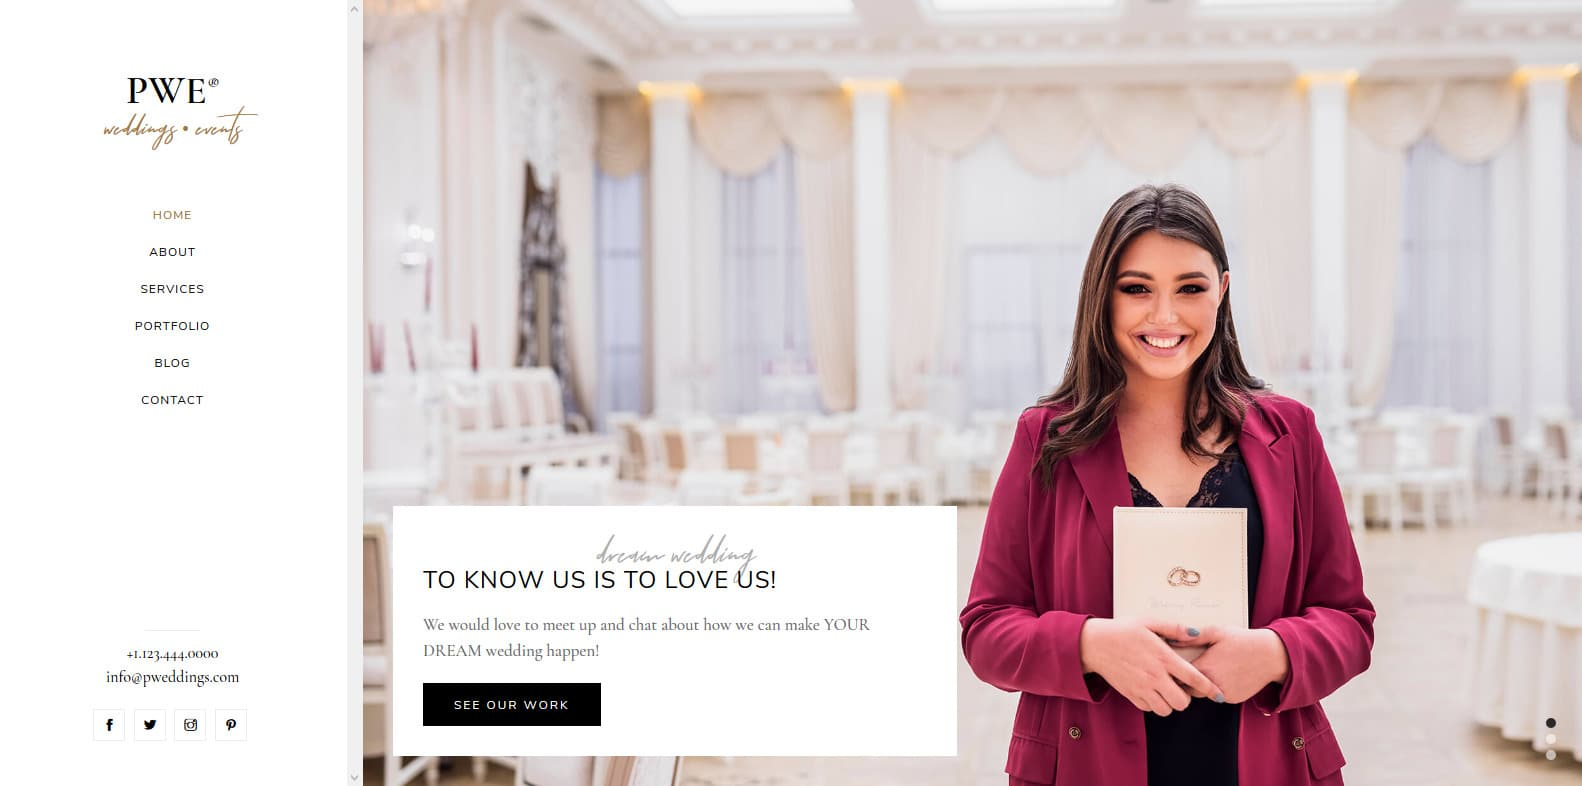 PWE-wedding-website-template